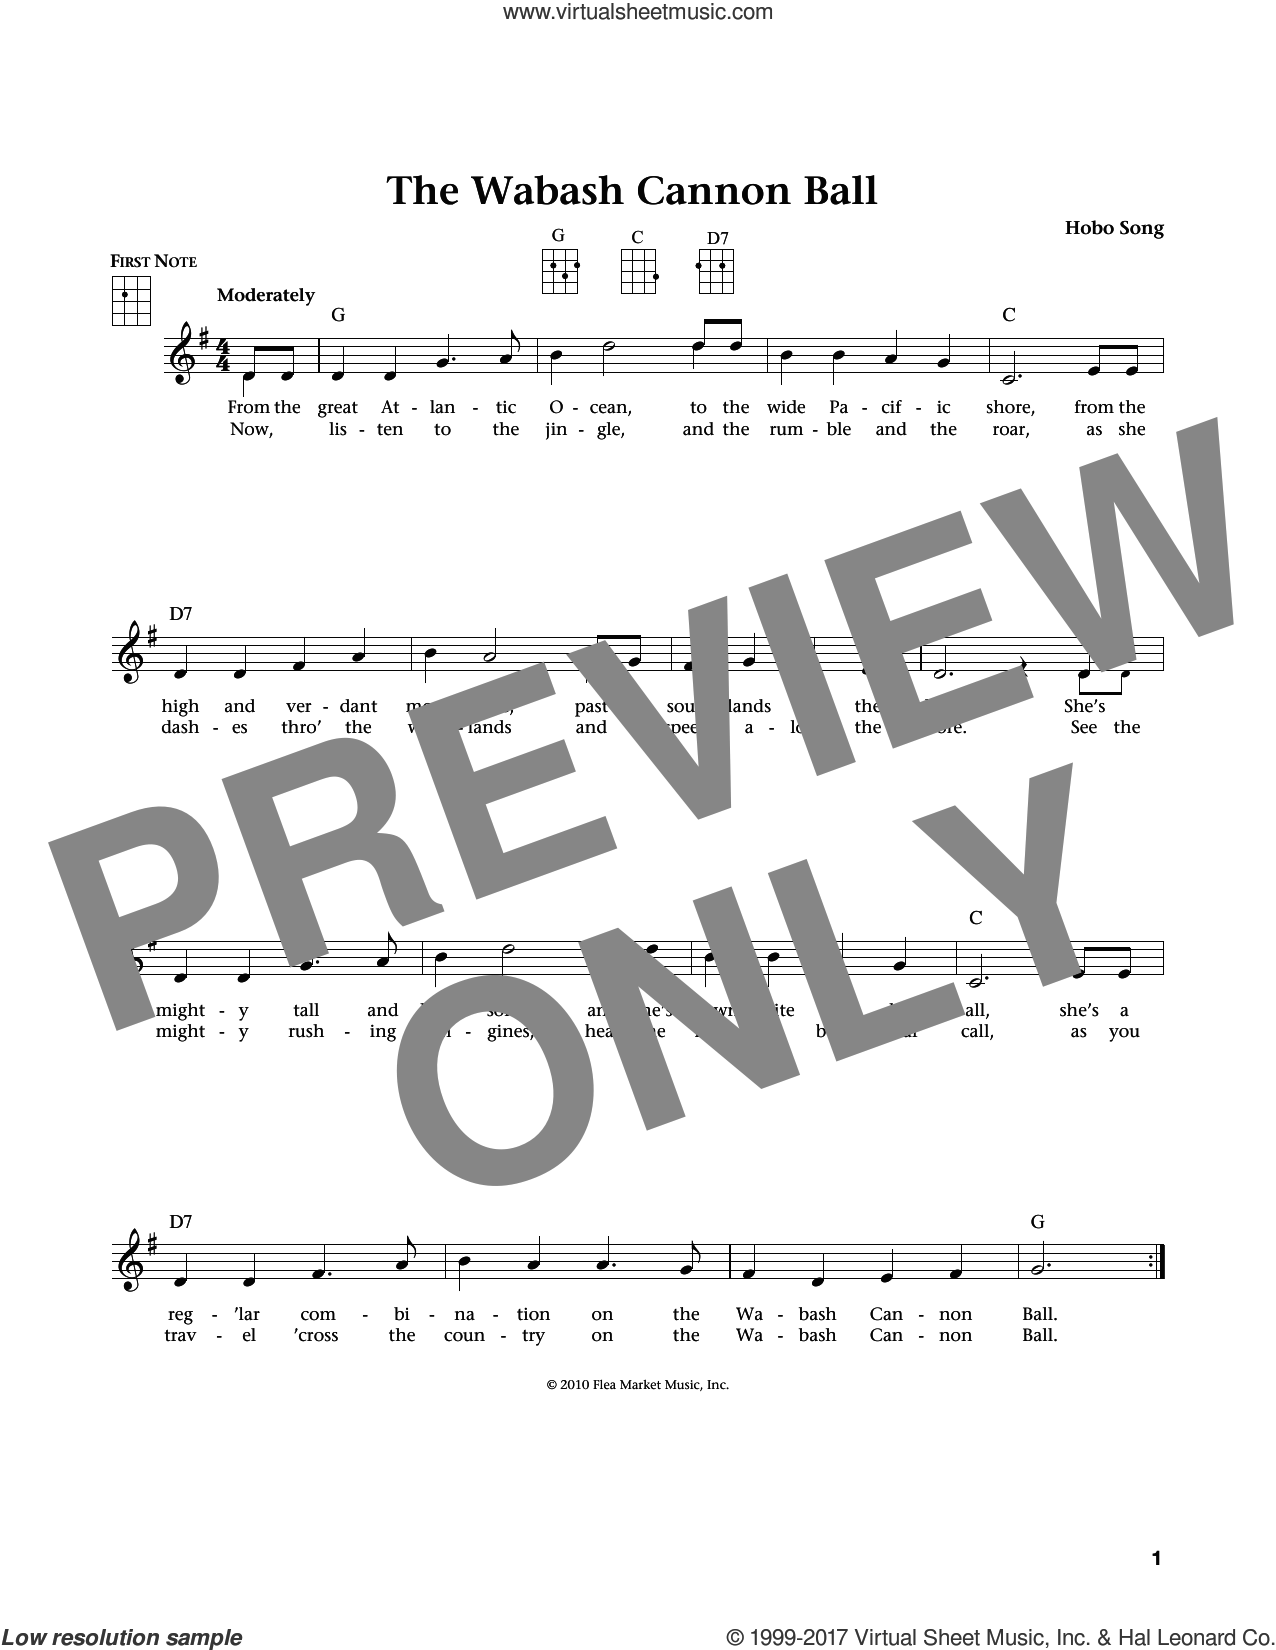 The Wabash Cannon Ball sheet music for ukulele by Hobo Song, Jim Beloff and Liz Beloff, intermediate skill level